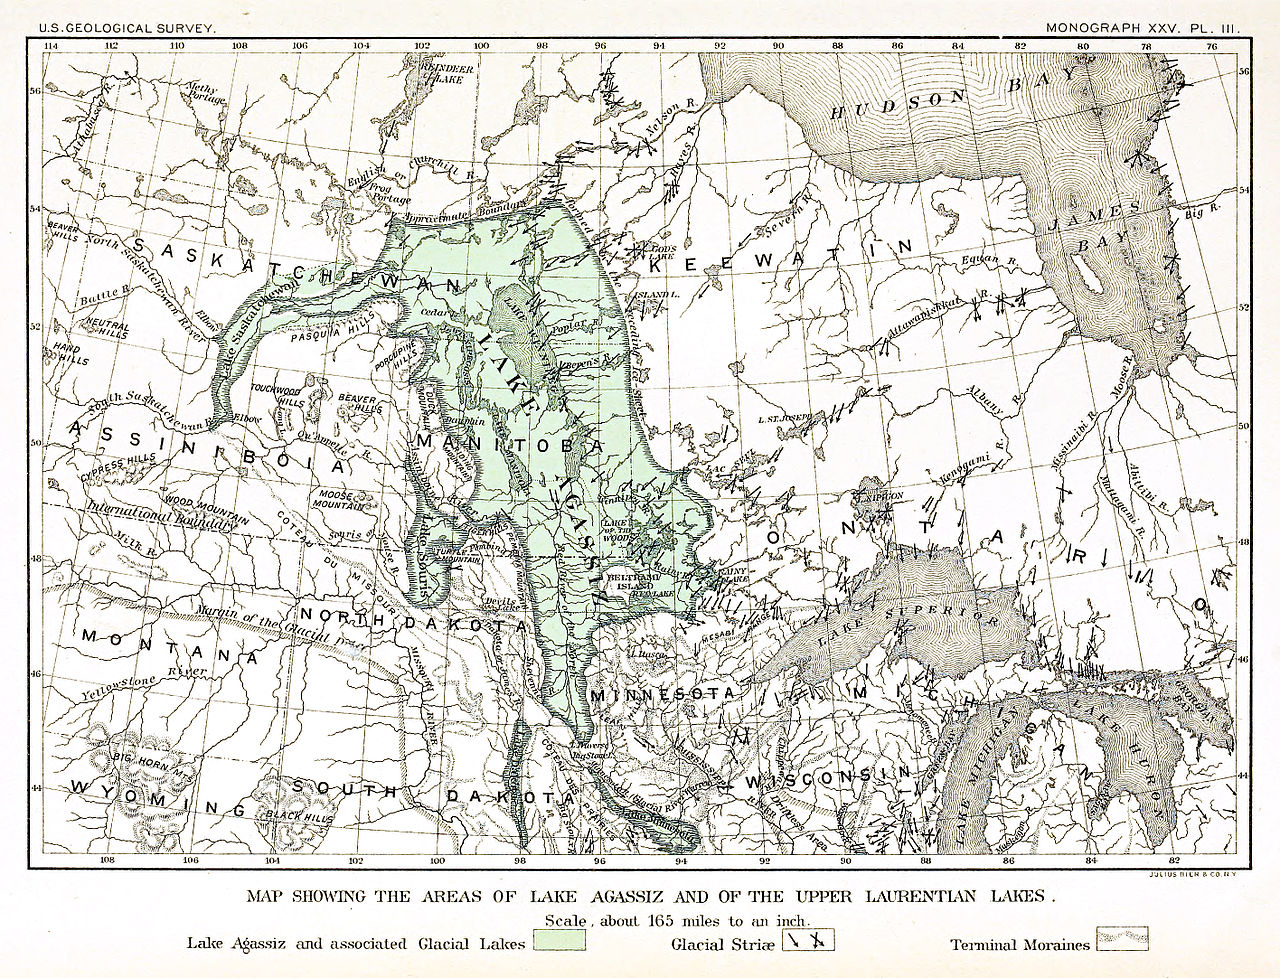 """This is a 19th century map of the estimated boundaries of Lake Agassiz. Following the western shore, from upper-left to lower right, you will find the prairie """"mountain range,"""" also known as Pasquia Hills, Porcupine Hills, Duck Mountain, Riding Mountain and Turtle Mountain."""